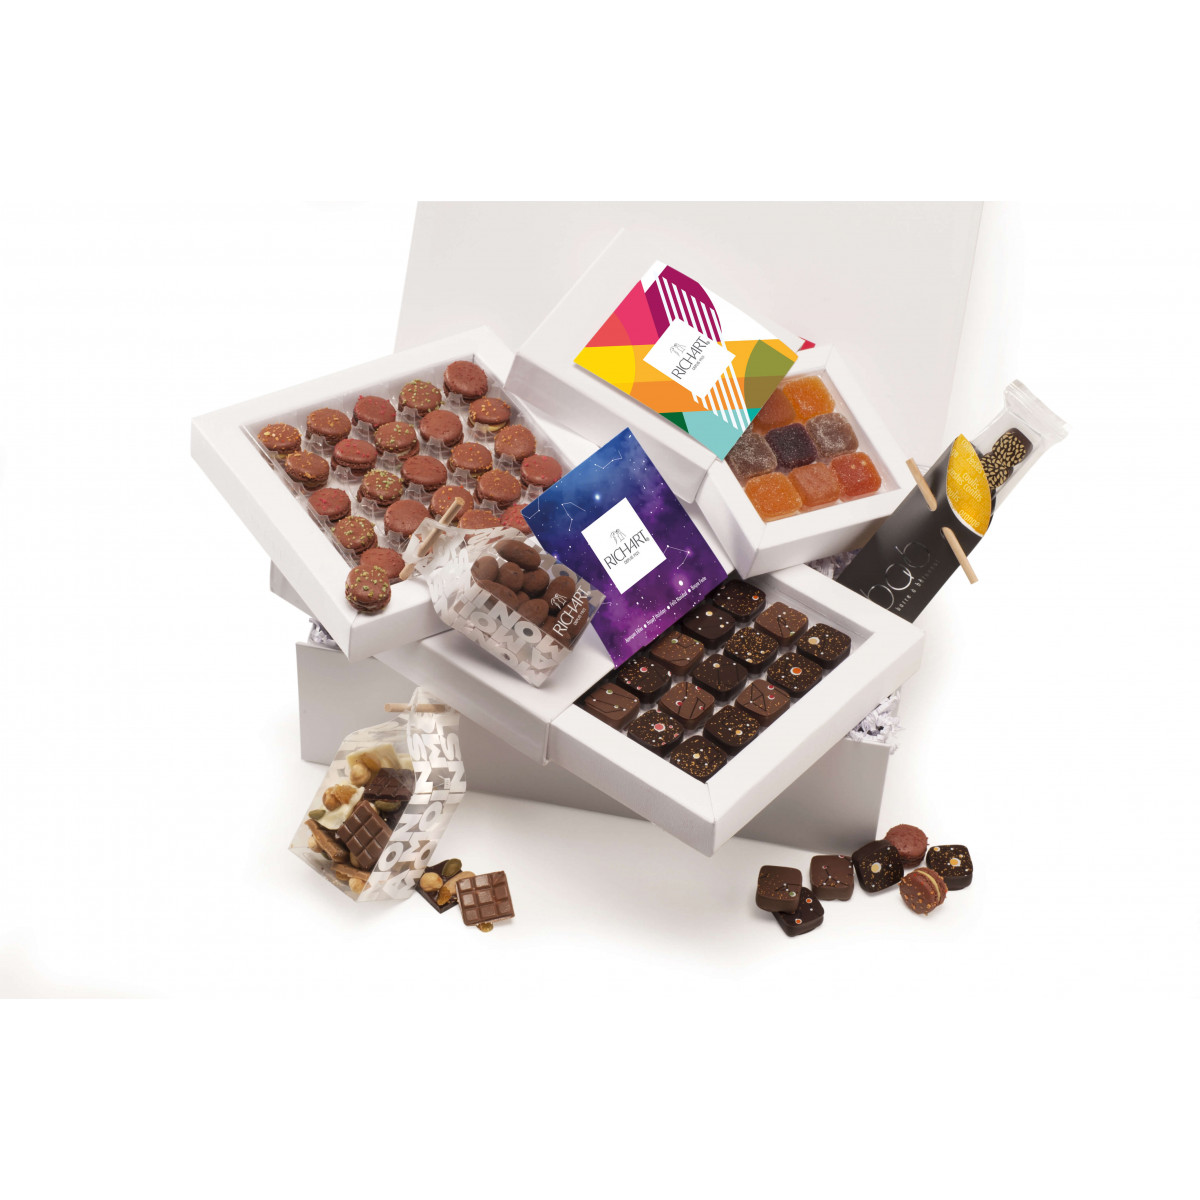 Constellations - Holiday Chocolate gift basket - large